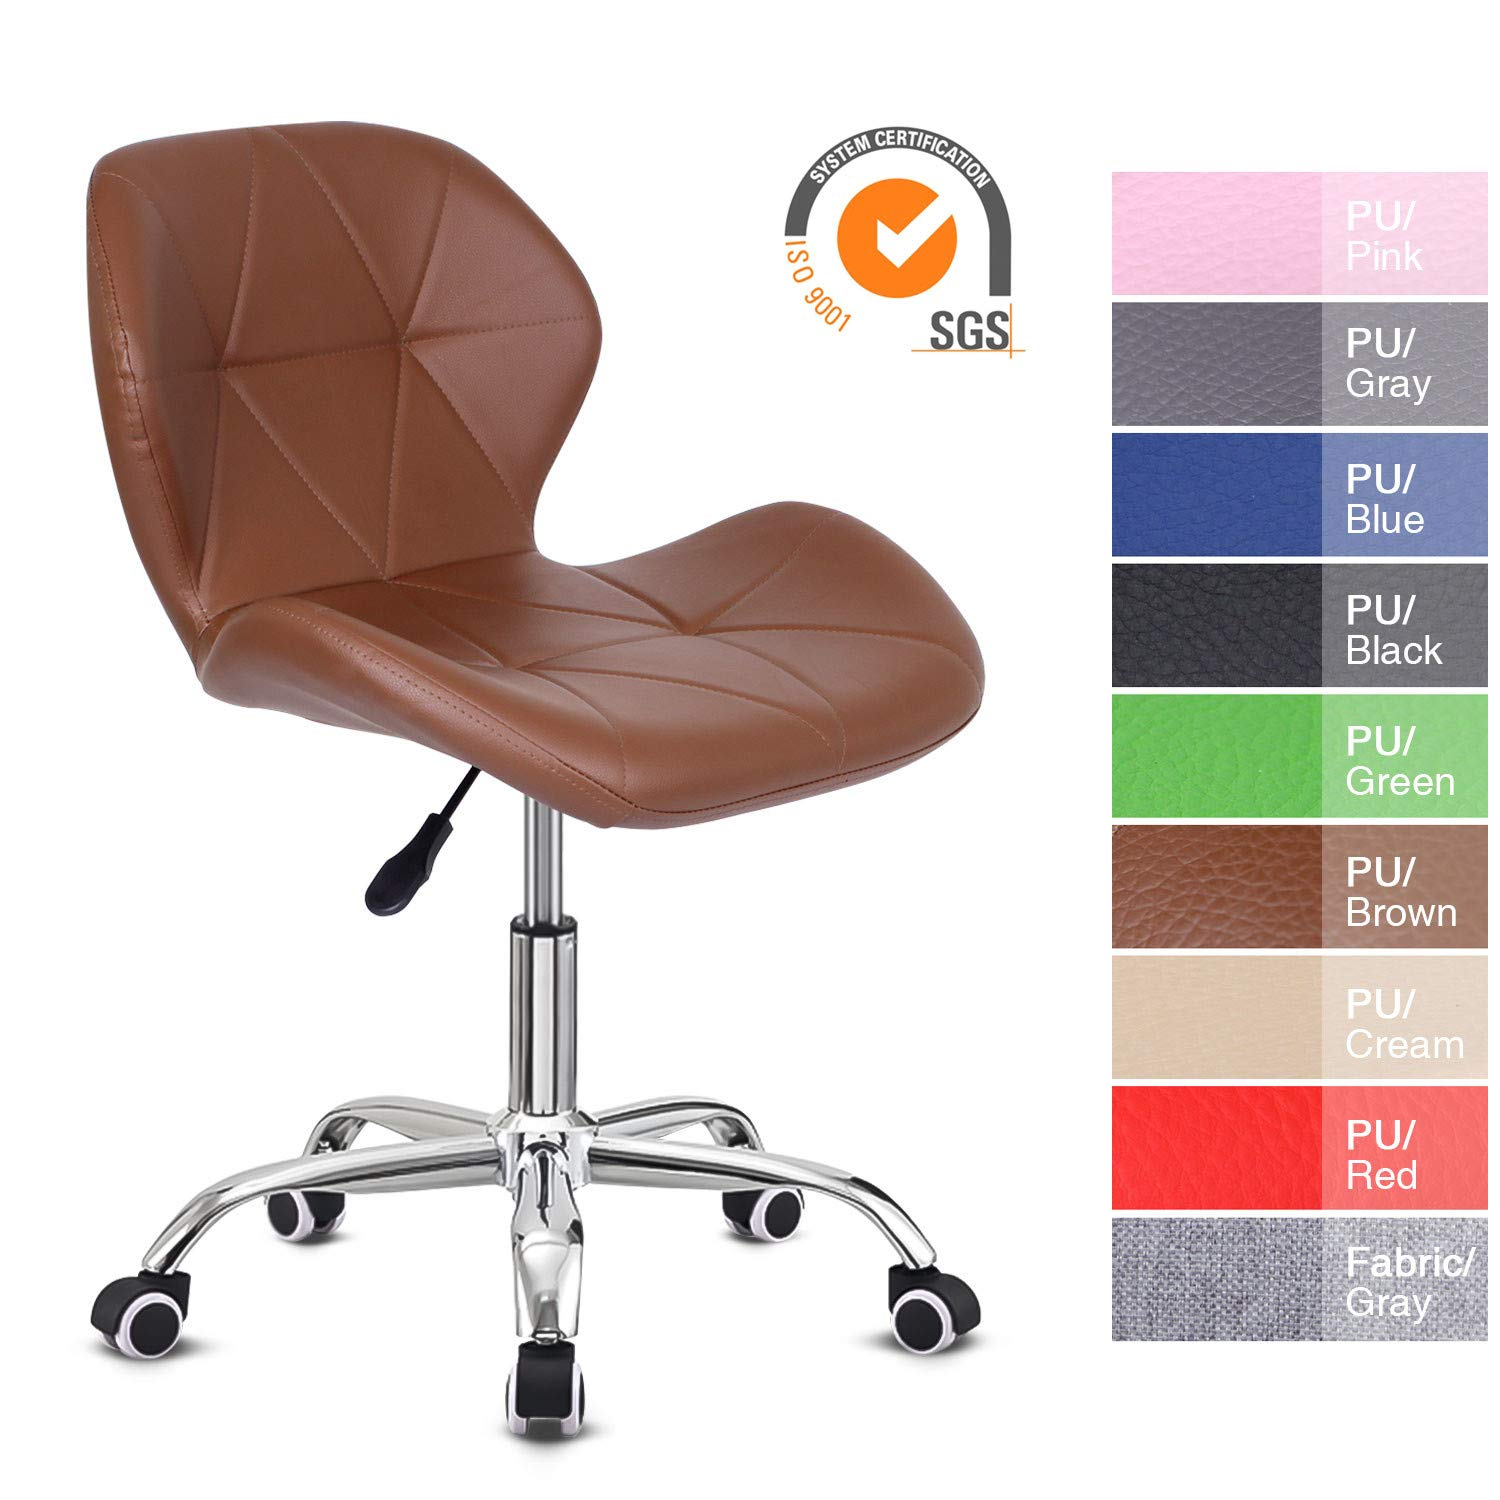 EUCO Office Chair,Brown PU Leather Desk Chair For Home